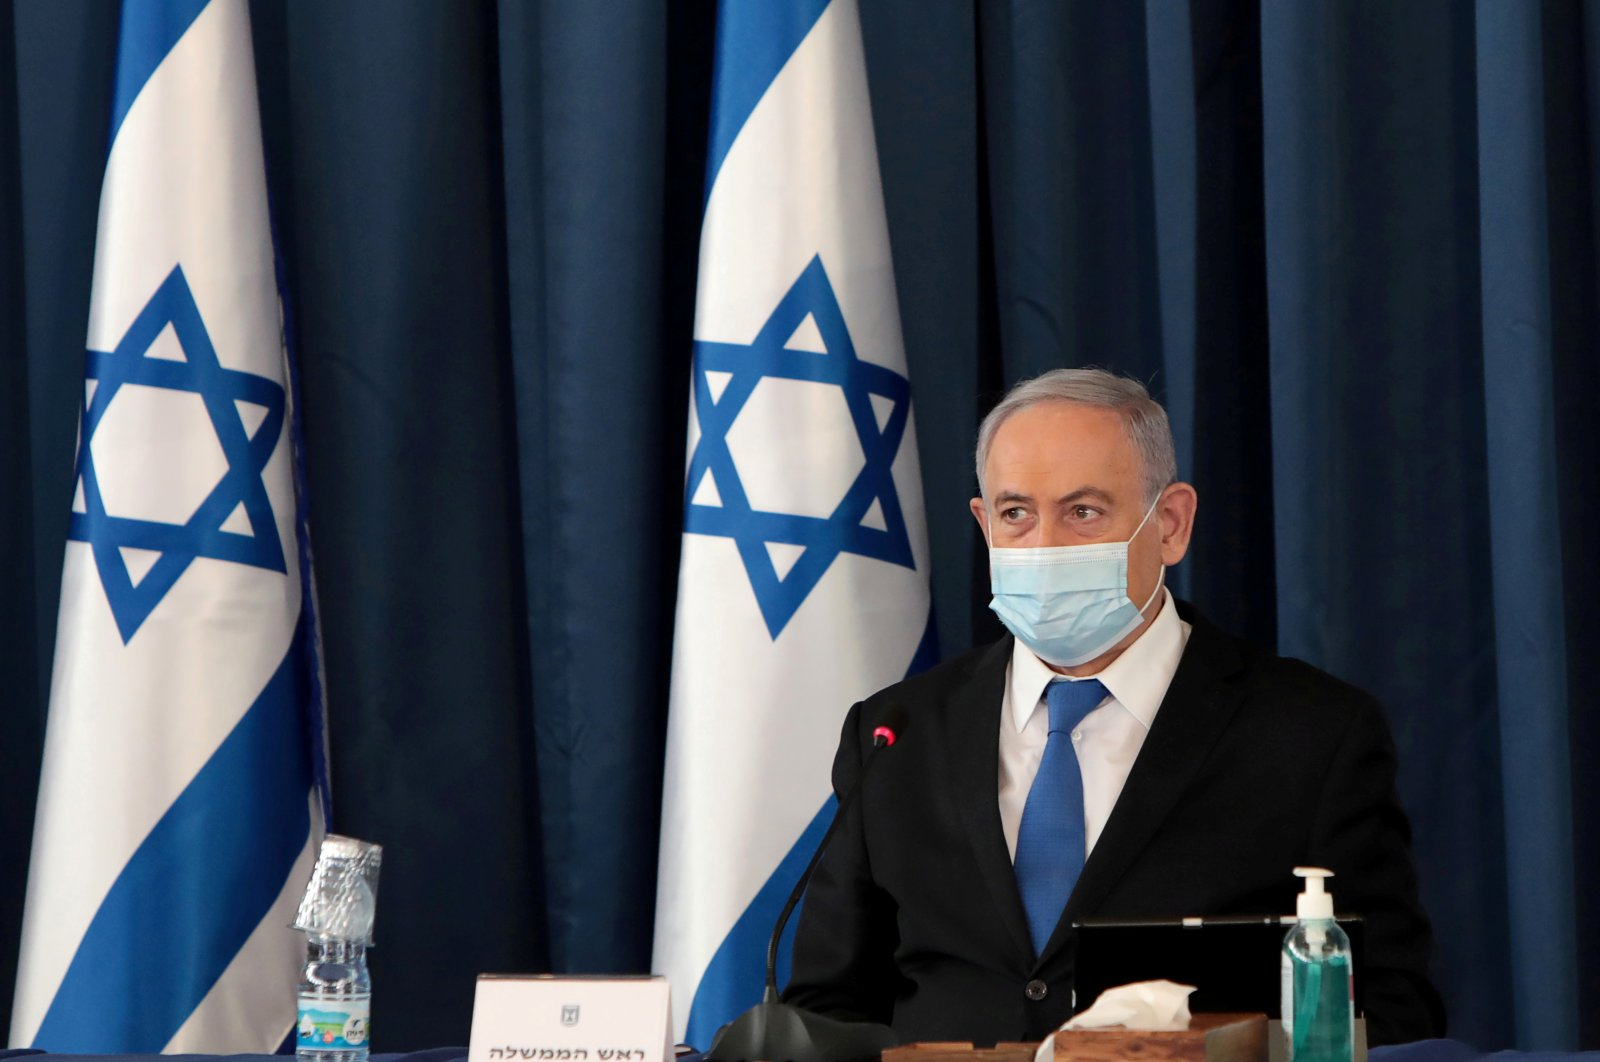 Israeli Prime Minister Netanyahu wears a protective mask as he holds a weekly cabinet meeting at the Foreign Ministry, Jerusalem, July 5, 2020. (REUTERS Photo)